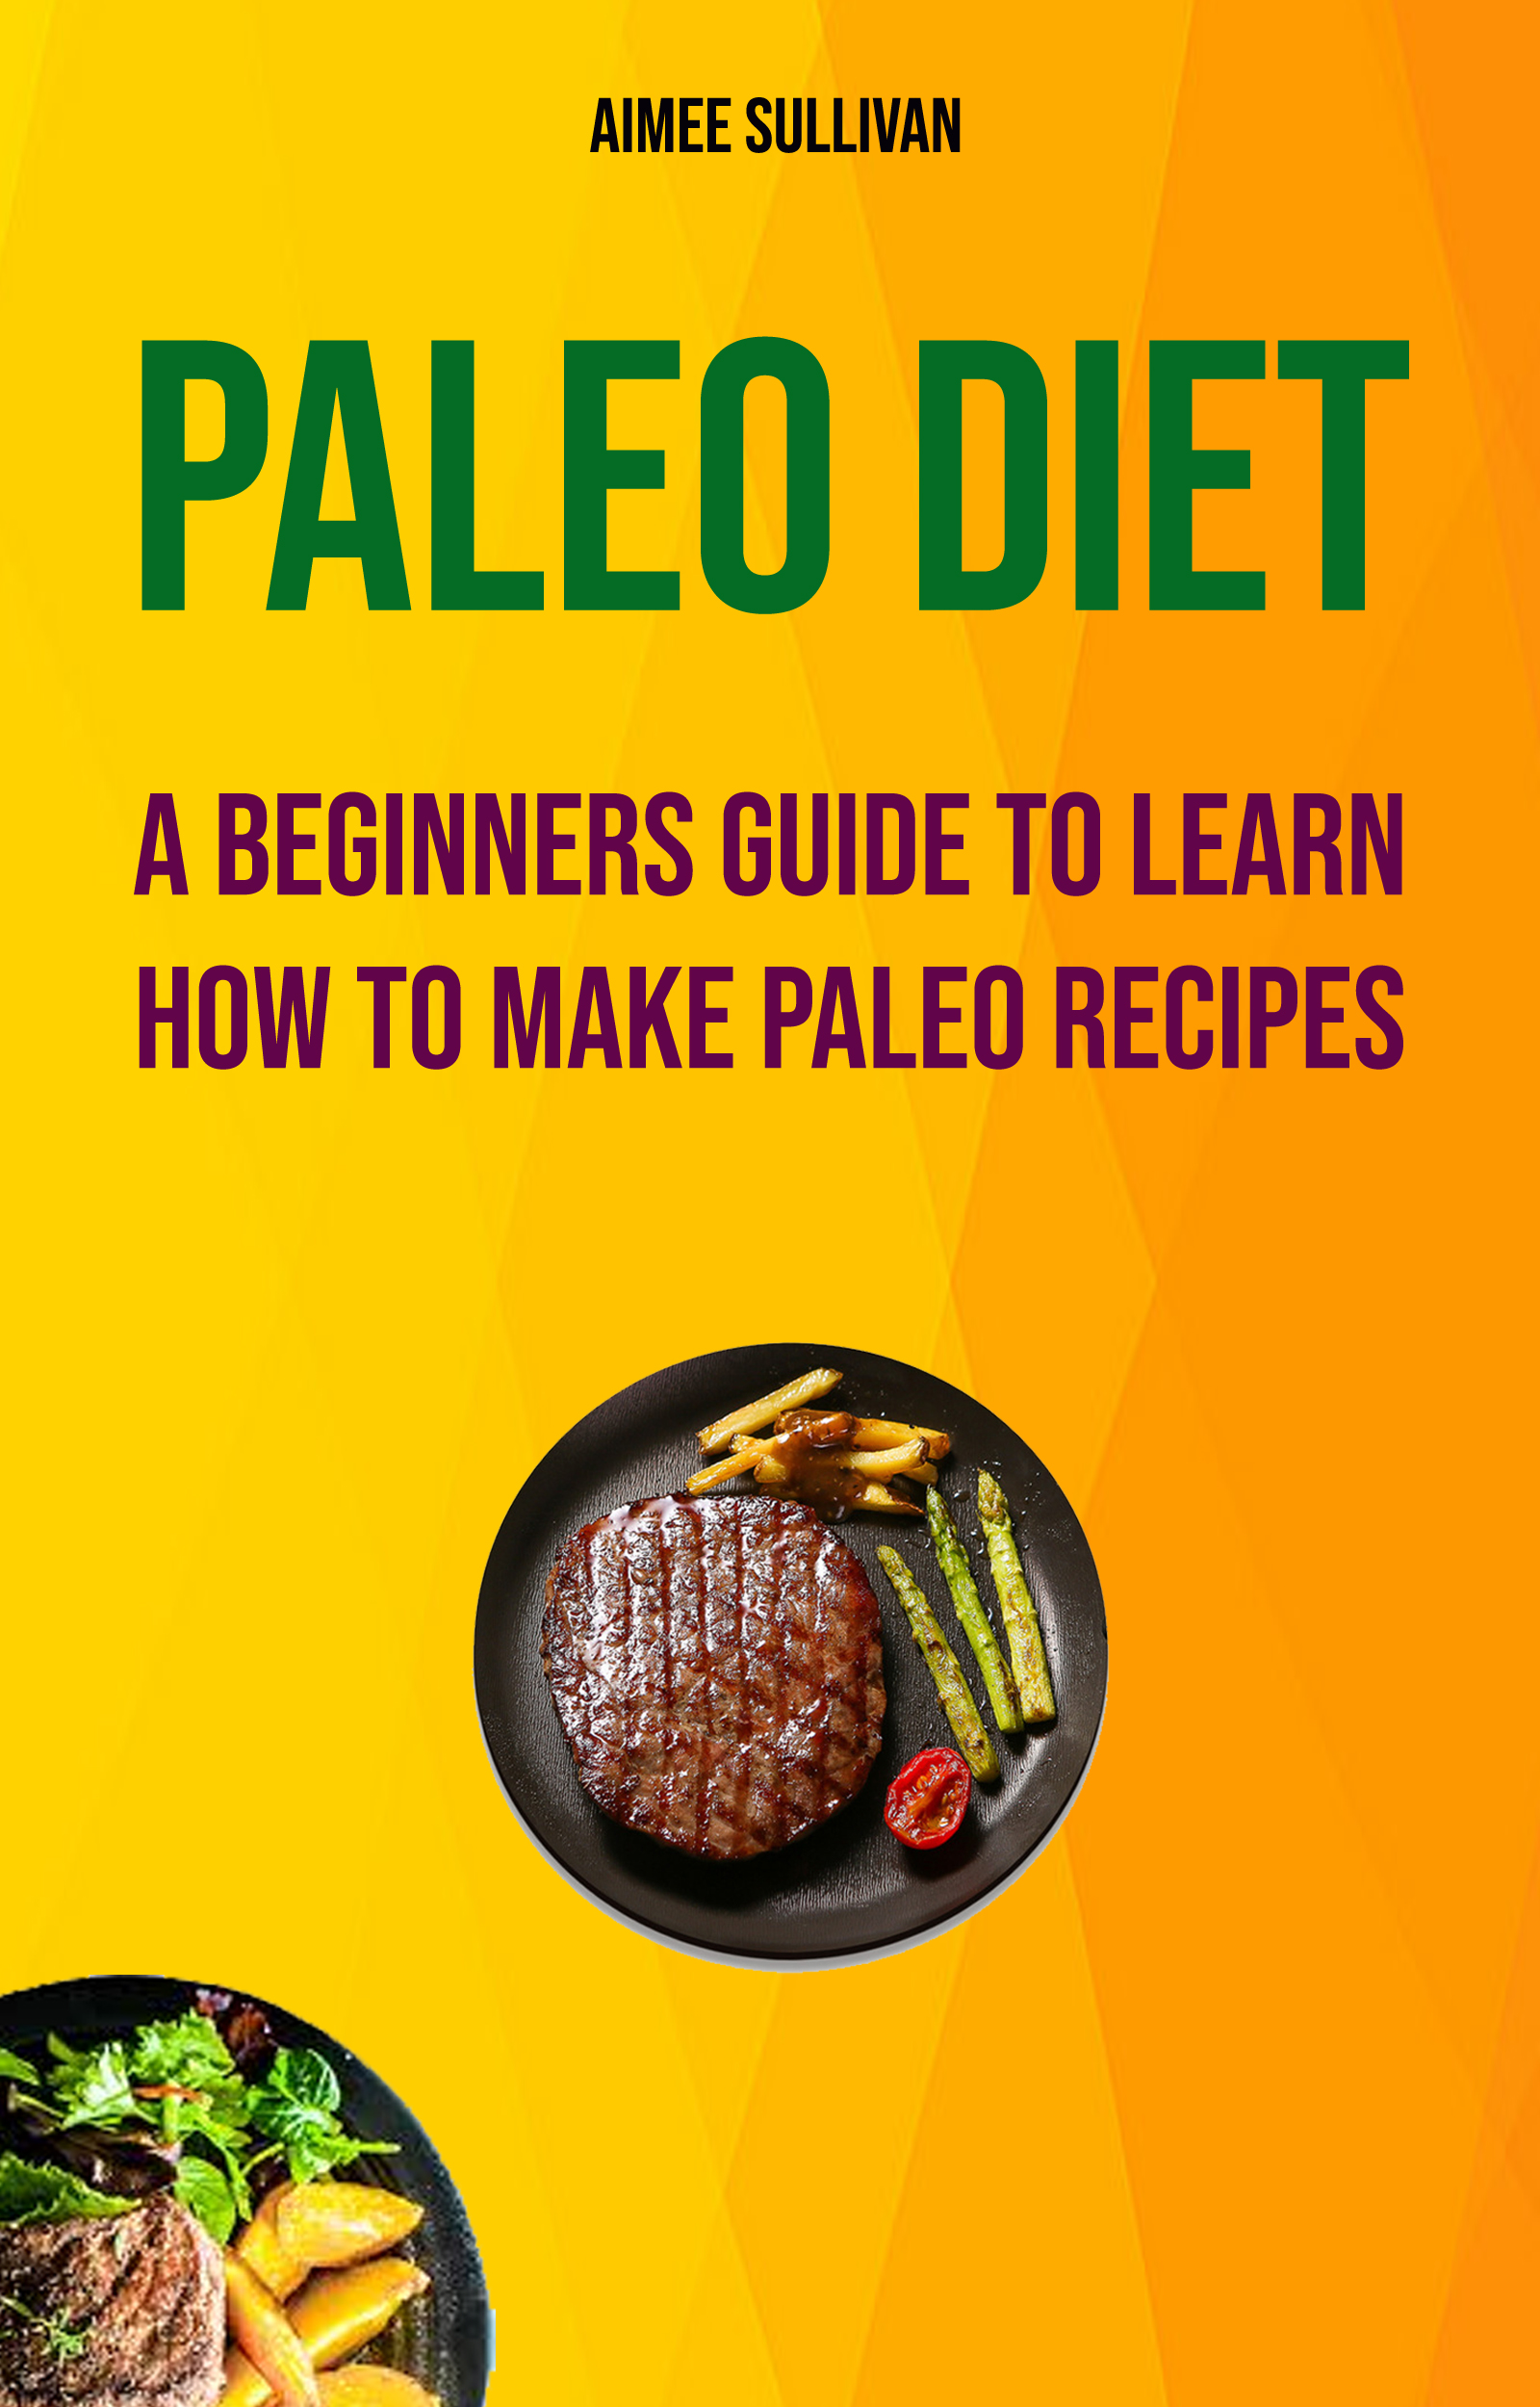 Paleo diet: a beginners guide to learn how to make paleo recipes